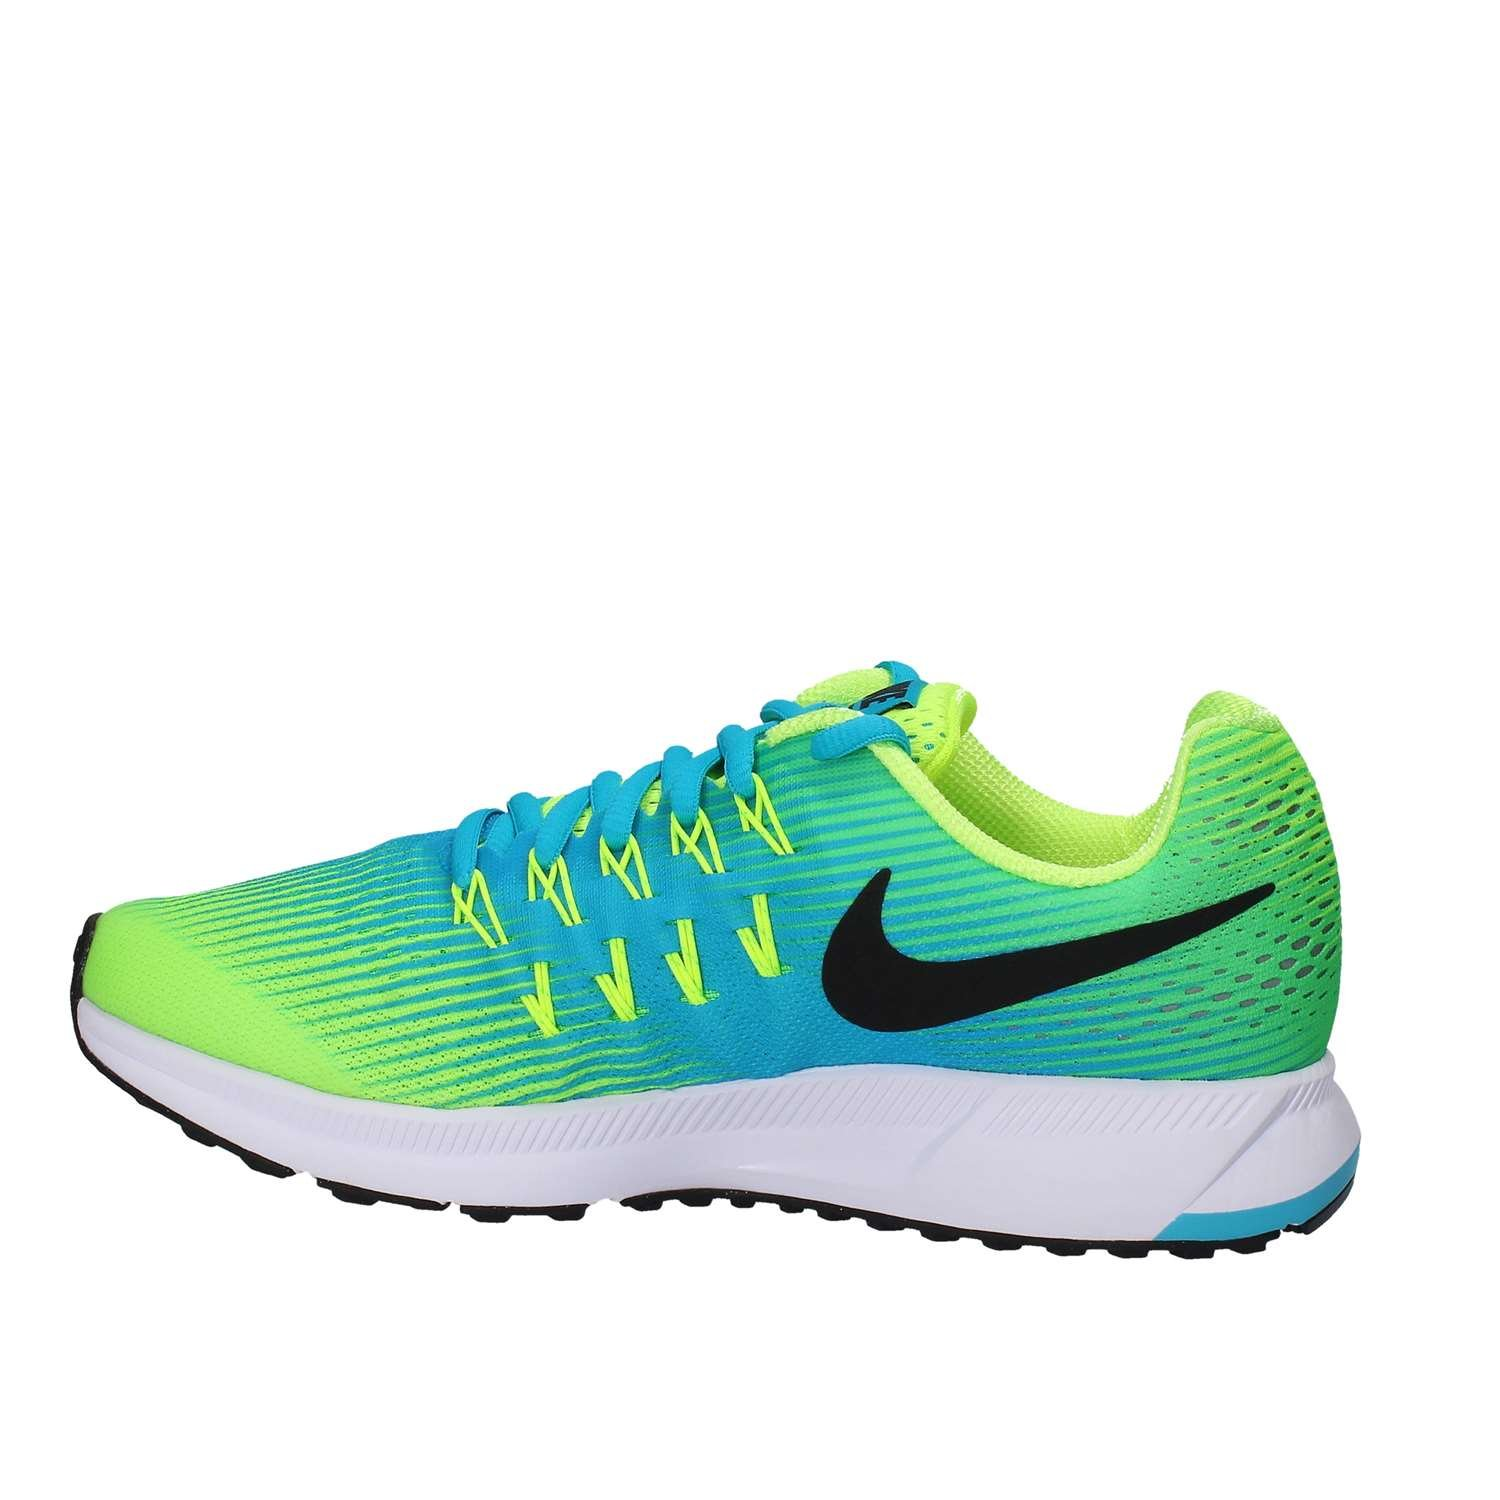 Volt Black Chlorine Blue Nike Kid Pegasus 33 Shoes Nike Pegasus ... 78da09028